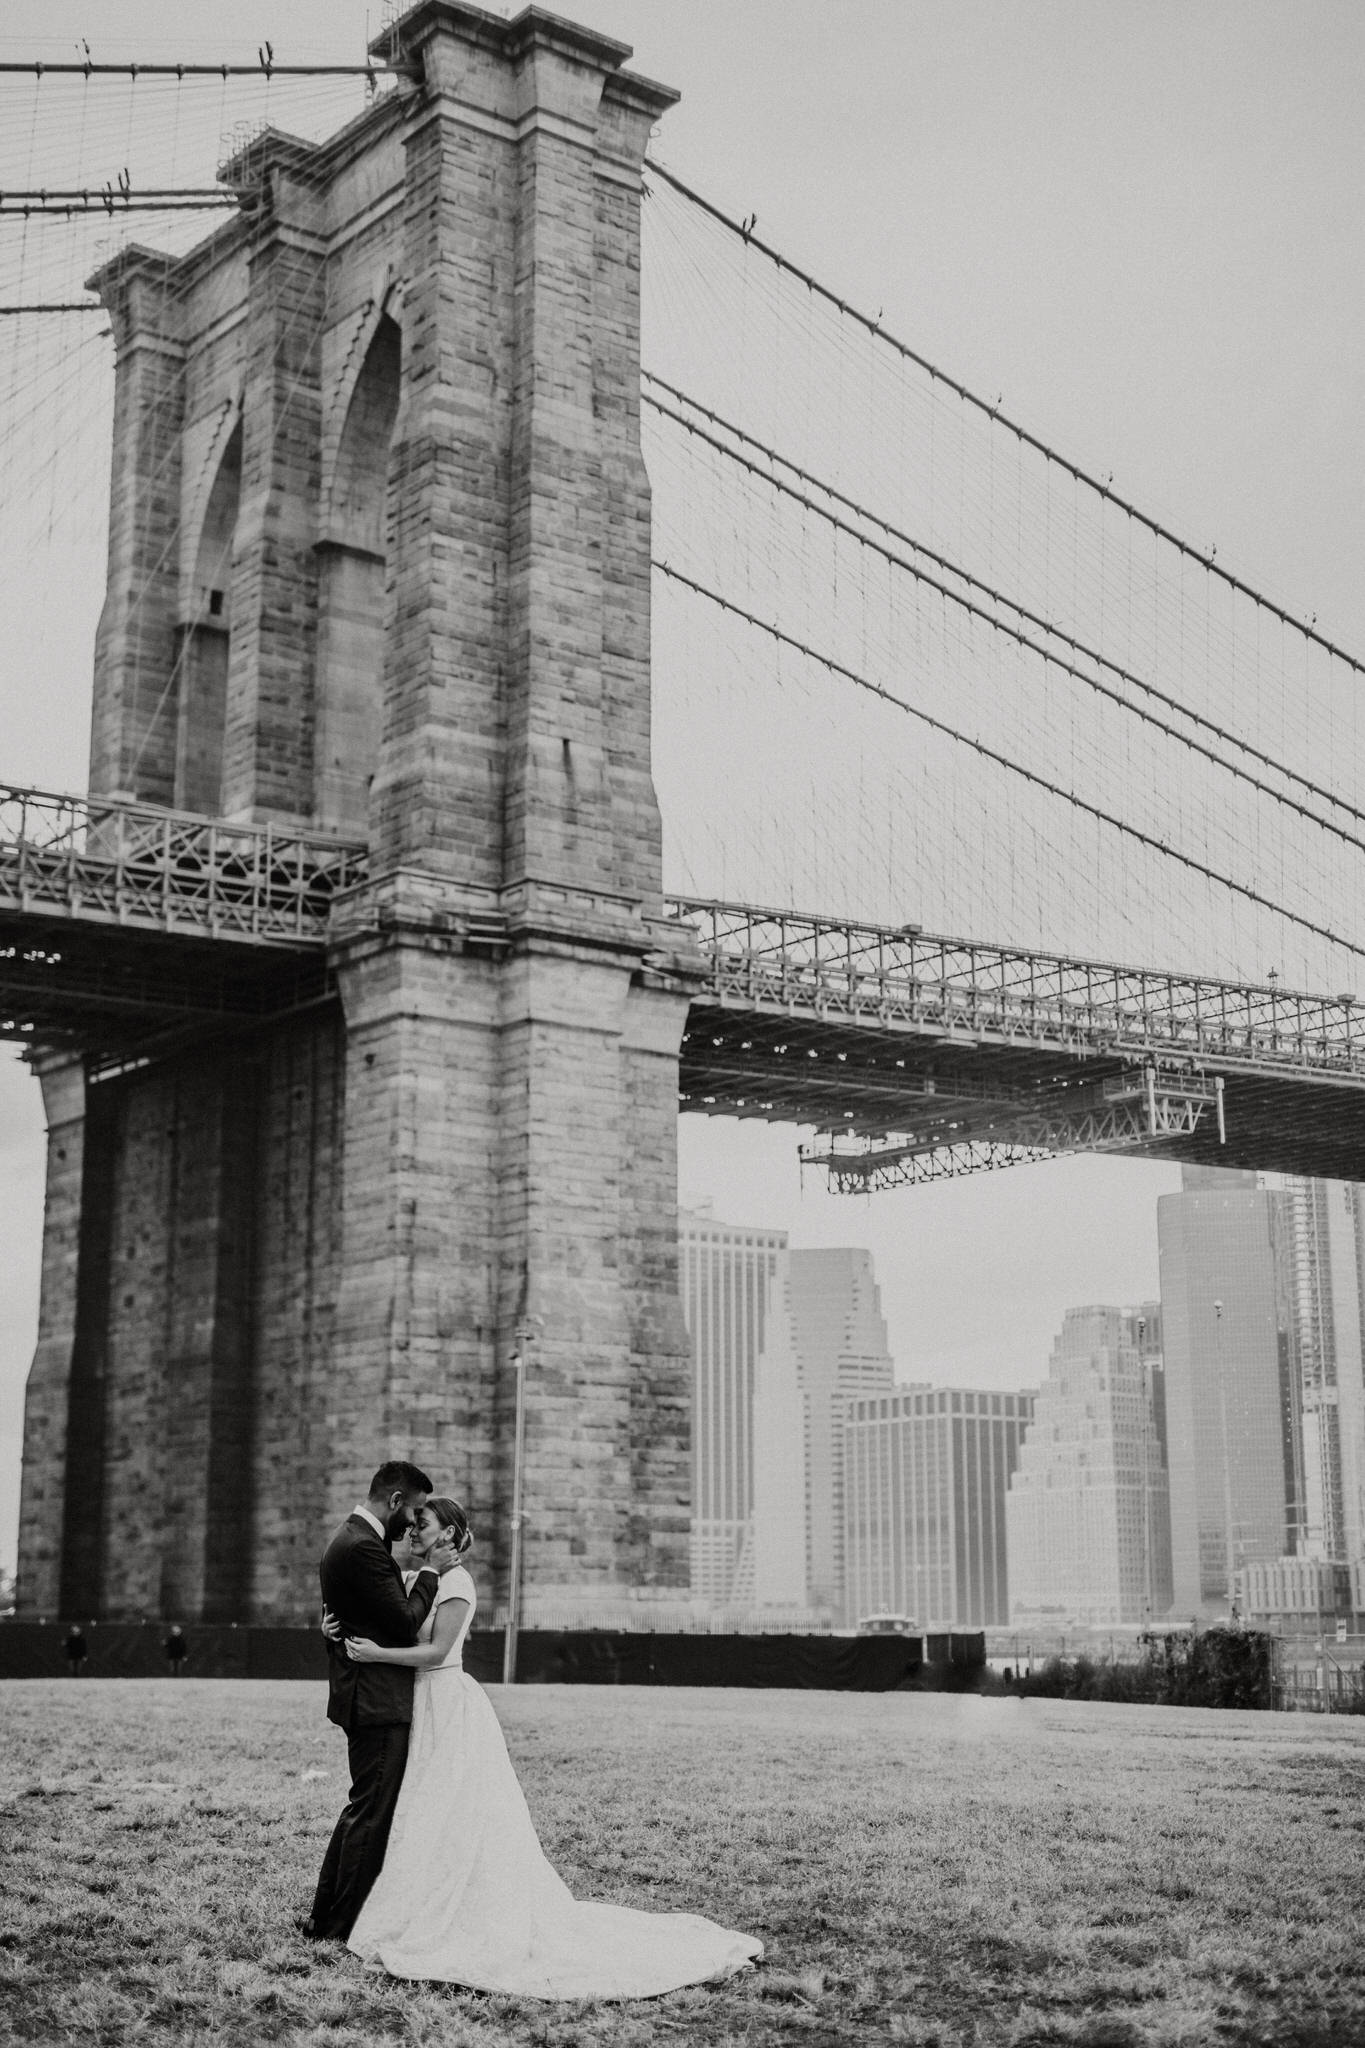 Black and white portait of the bride and groom in front of the Brooklyn Bridge Park, New York. Wedding Photographer Brent Calis.